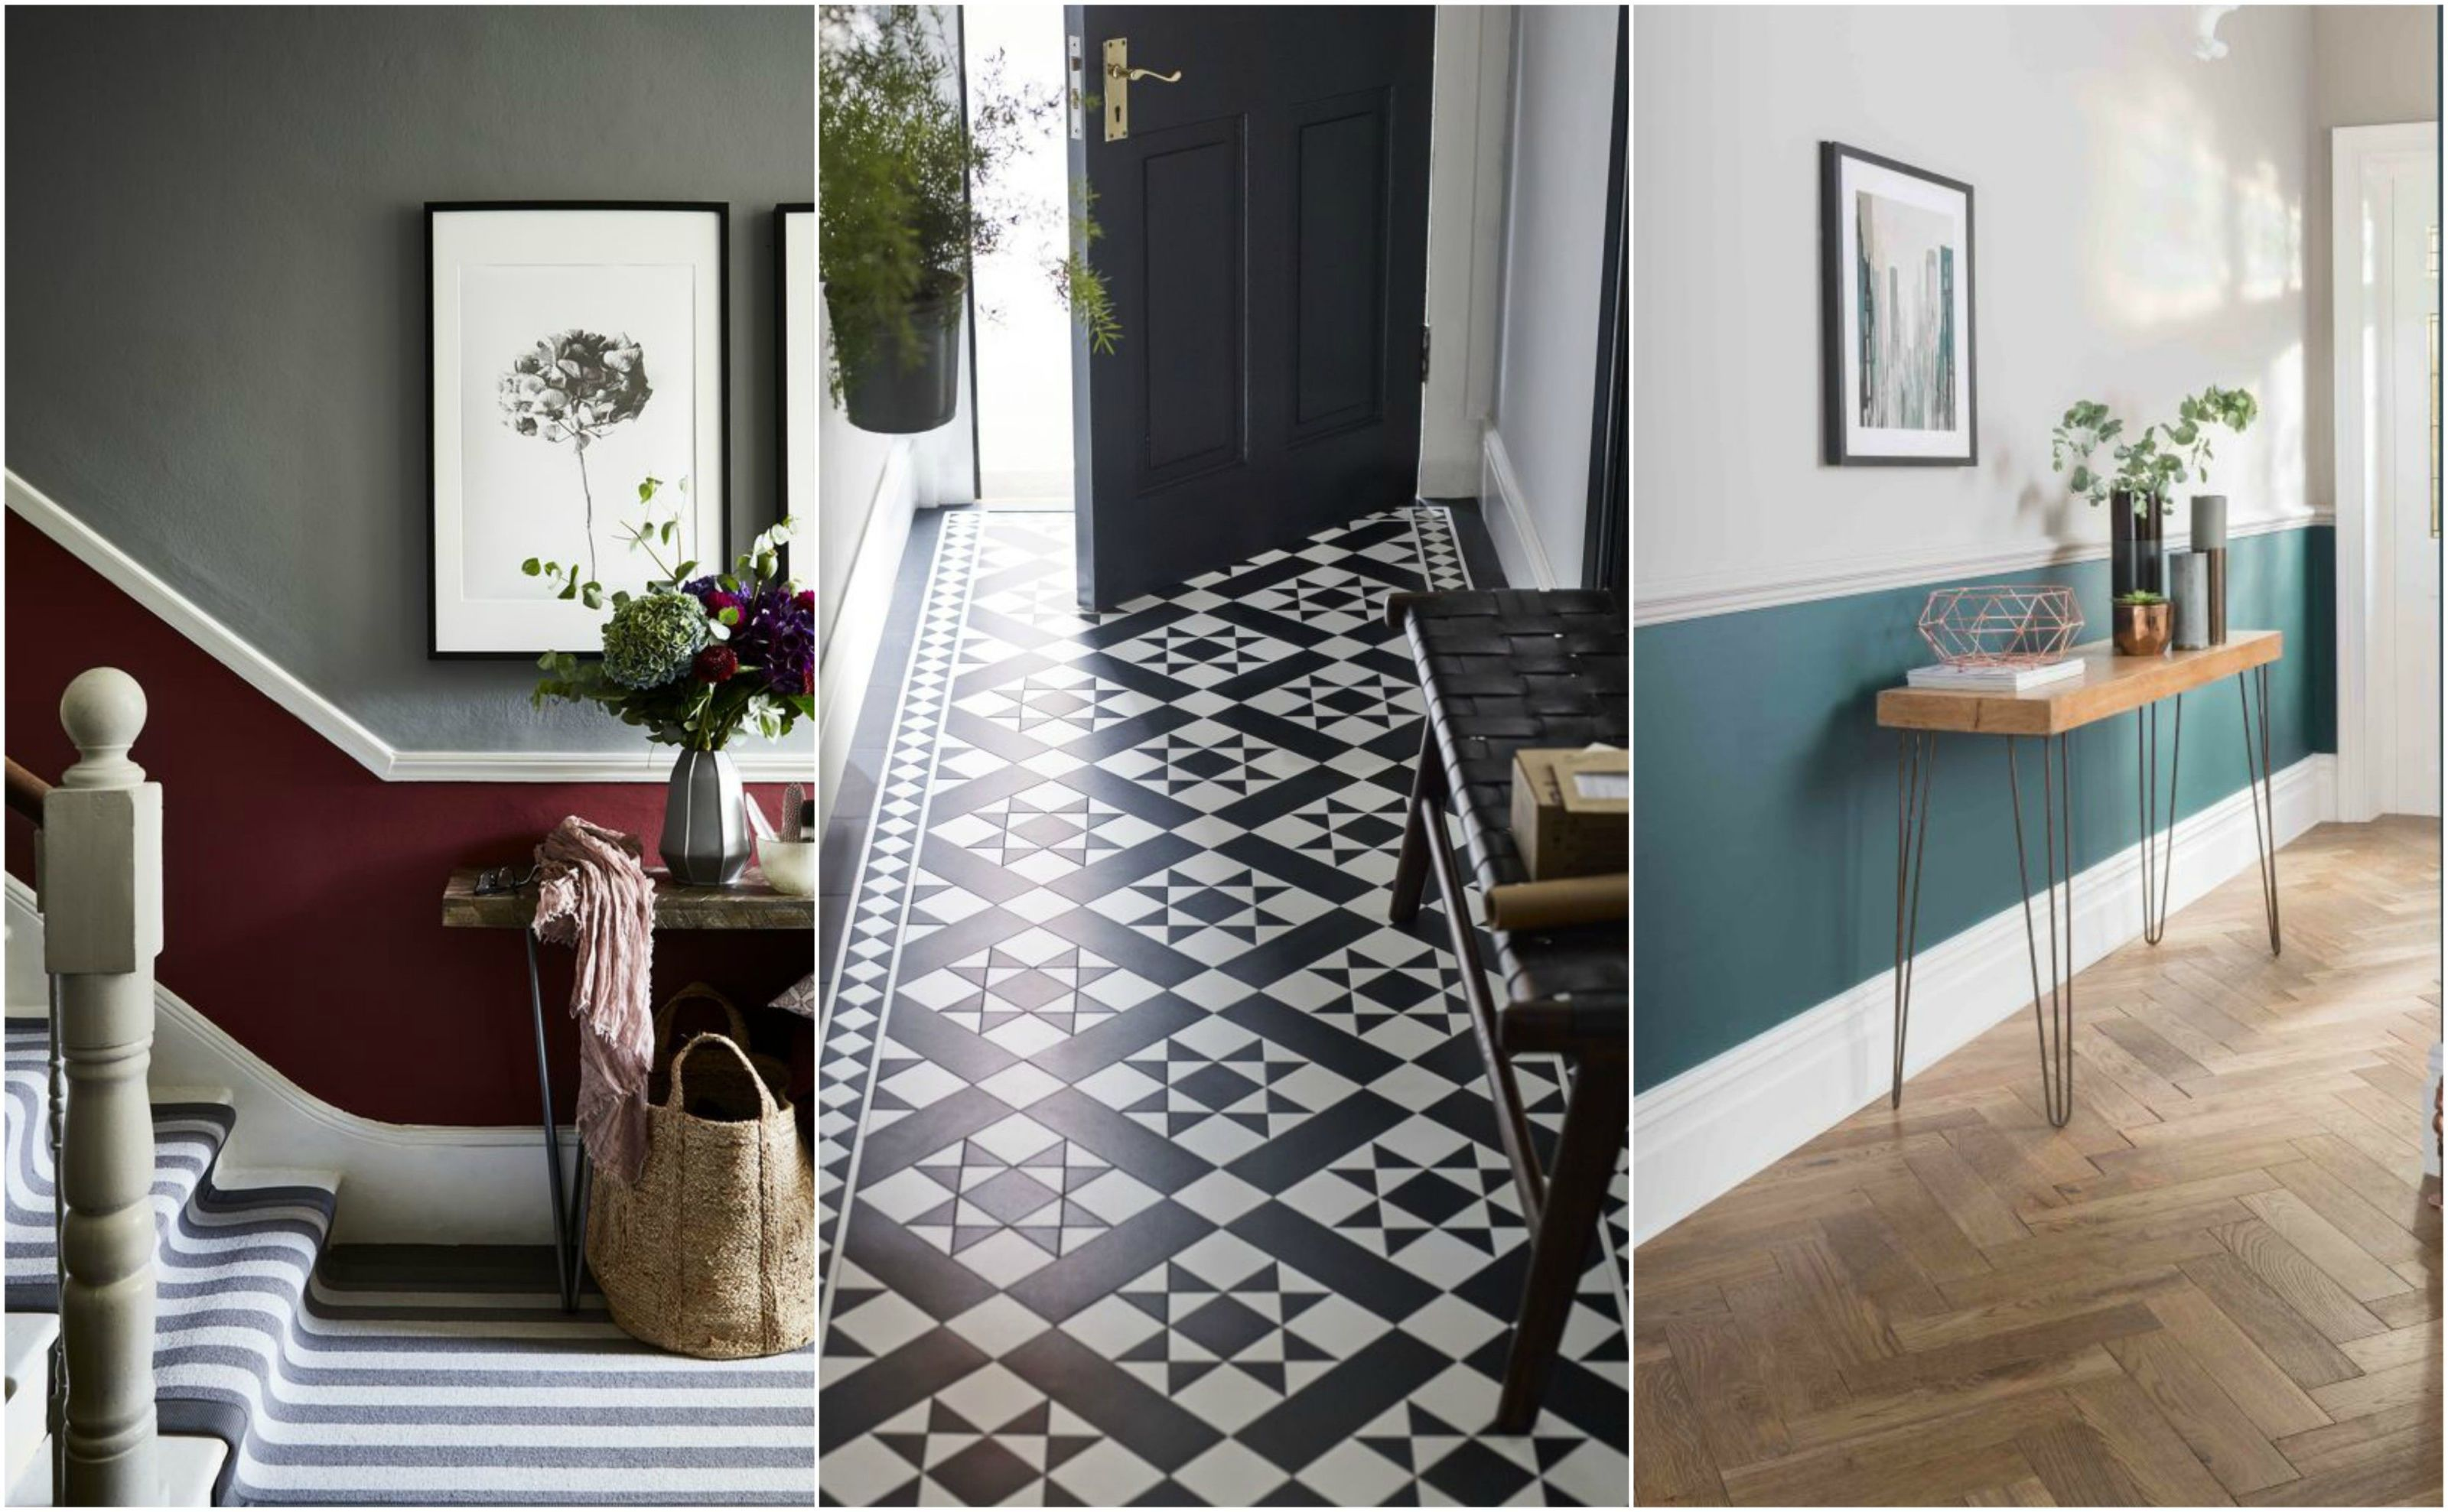 Hallway decorating ideas – Setup tips for a chic hallway